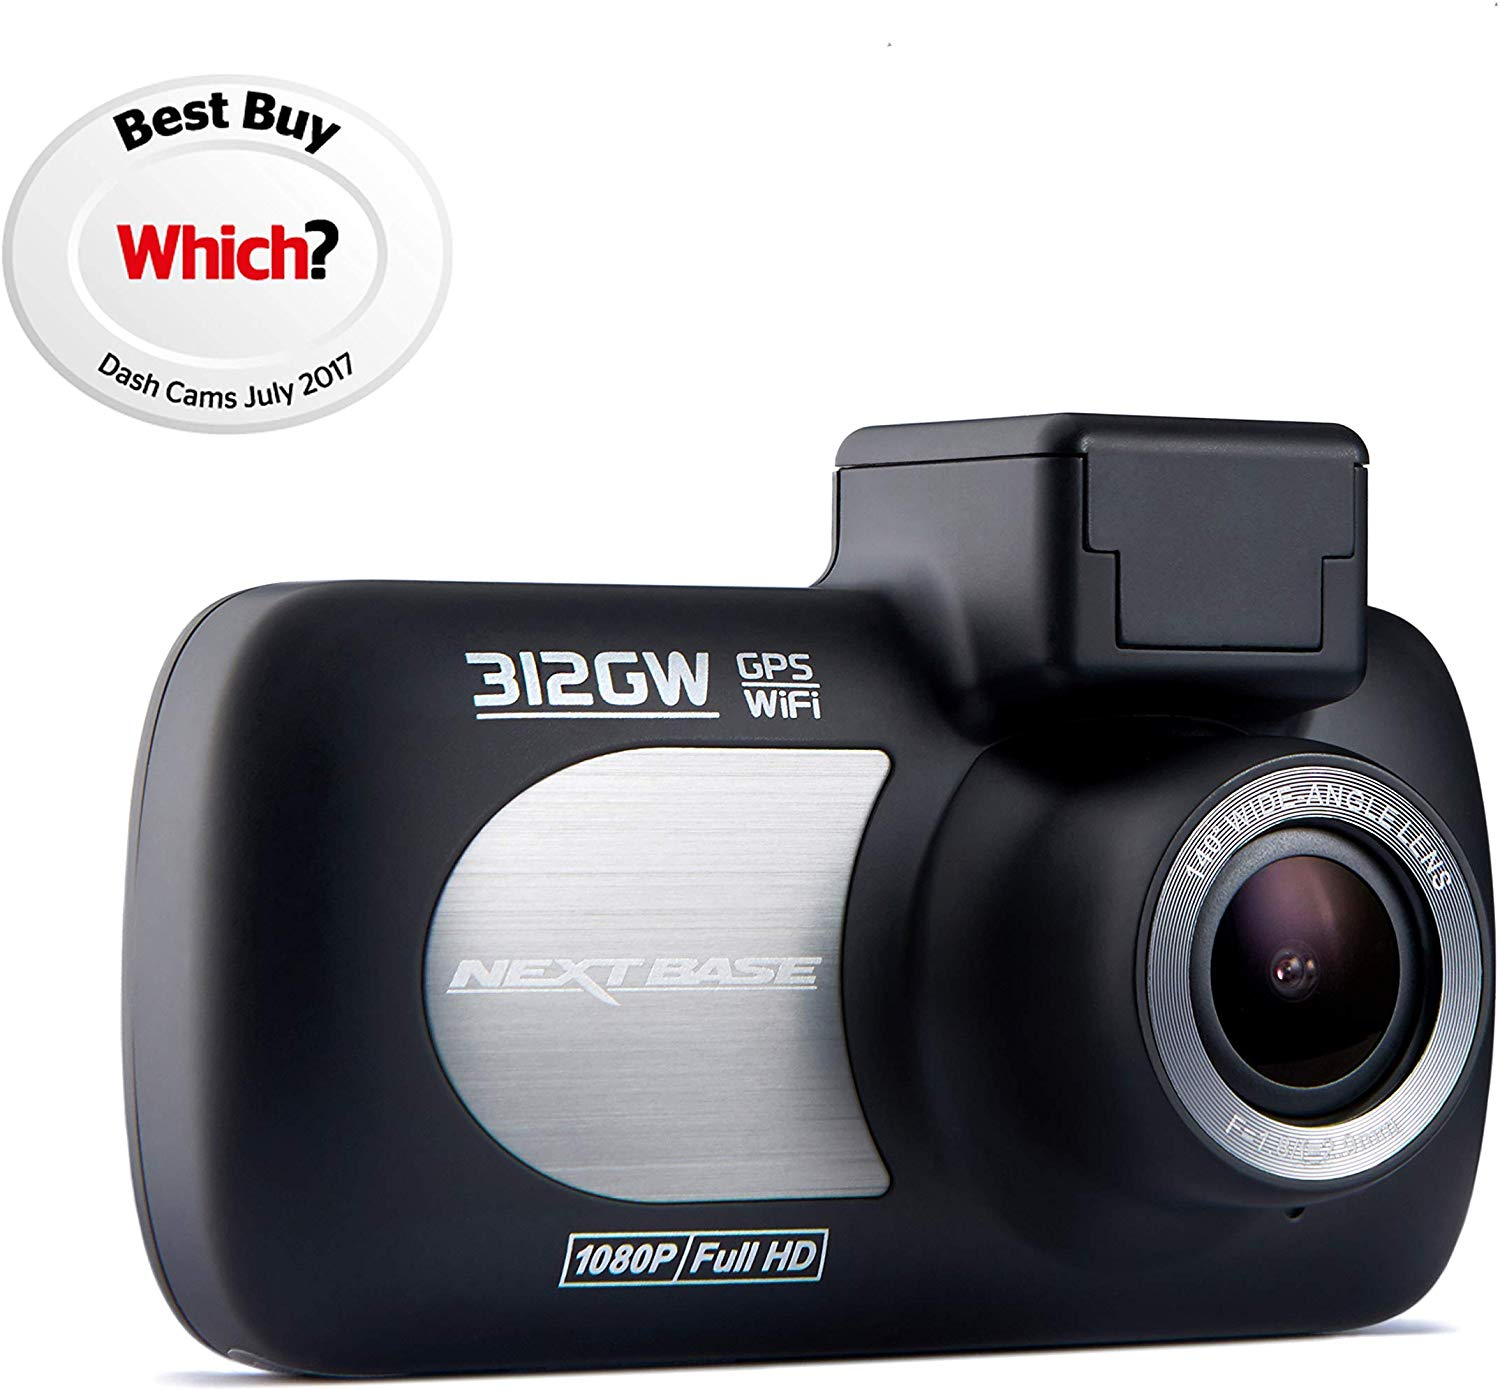 Nextbase 312GW – Full 1080p HD In-Car Dash Camera DVR – 140° Viewing Angle,WiFi and GPS